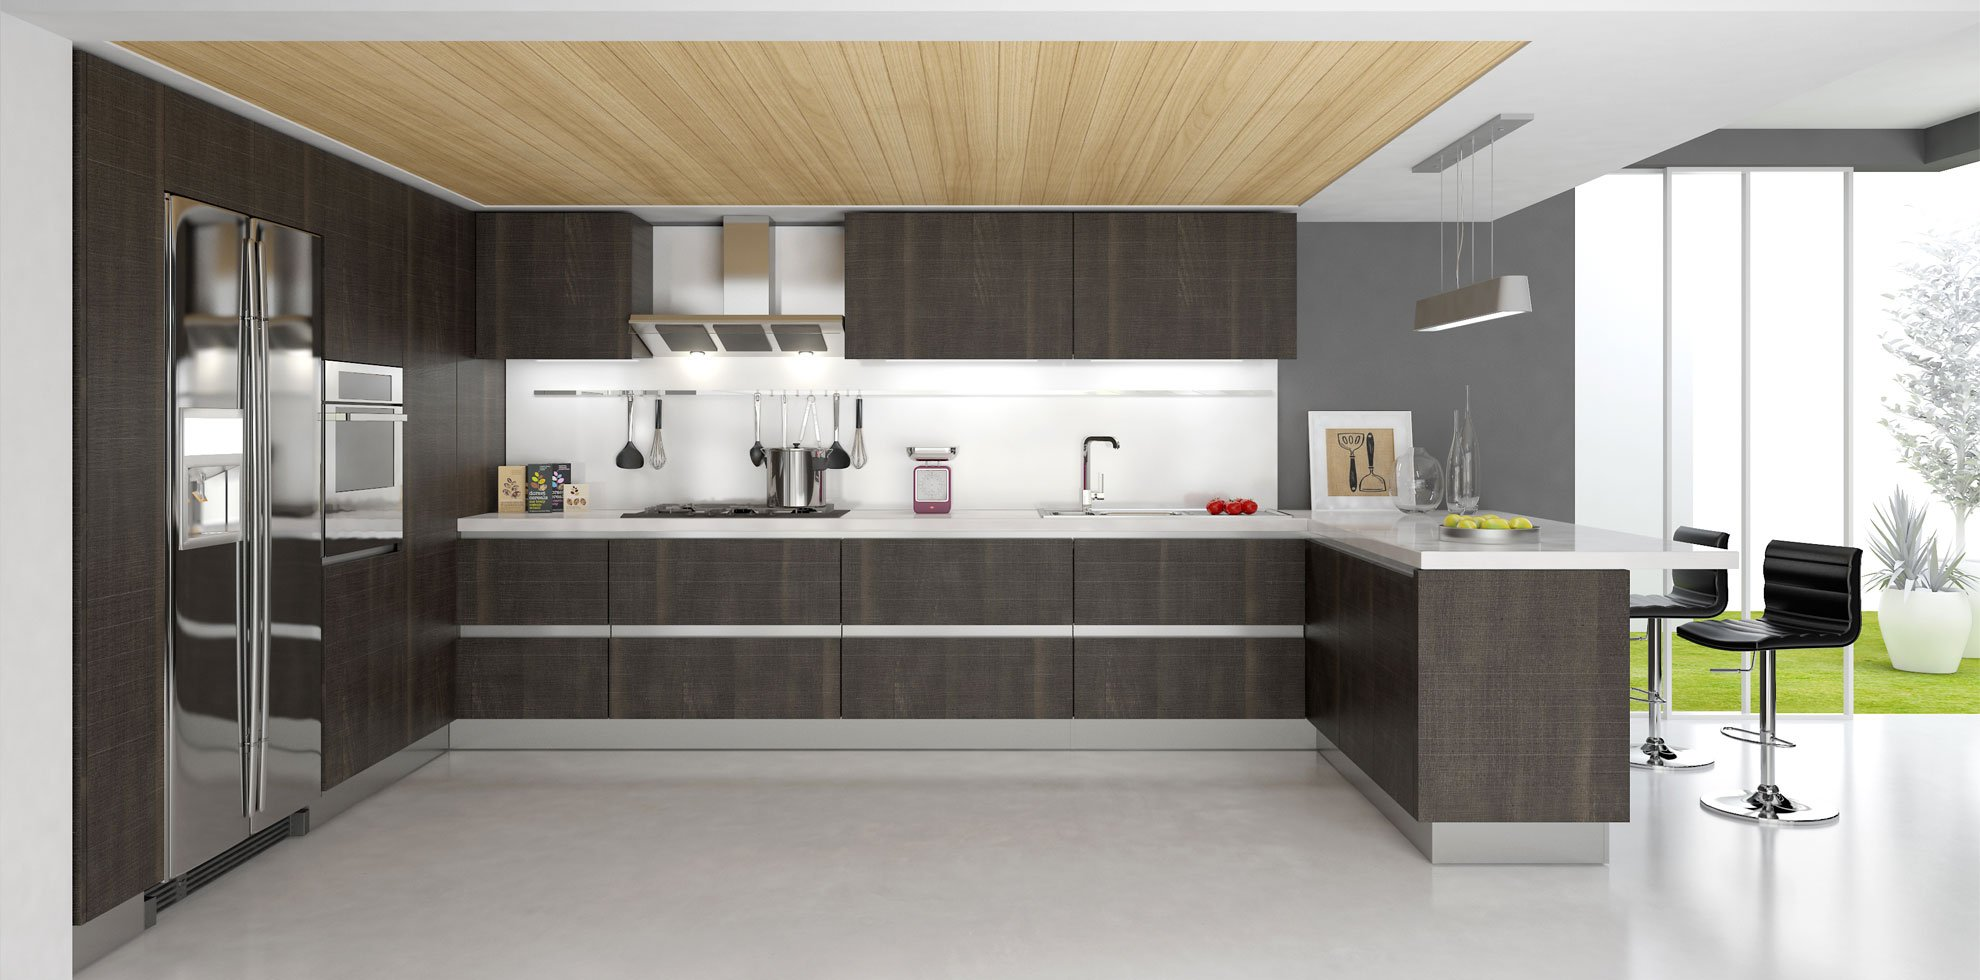 contemporary kitchen cabinets design 20 prime examples of modern kitchen cabinets 13830